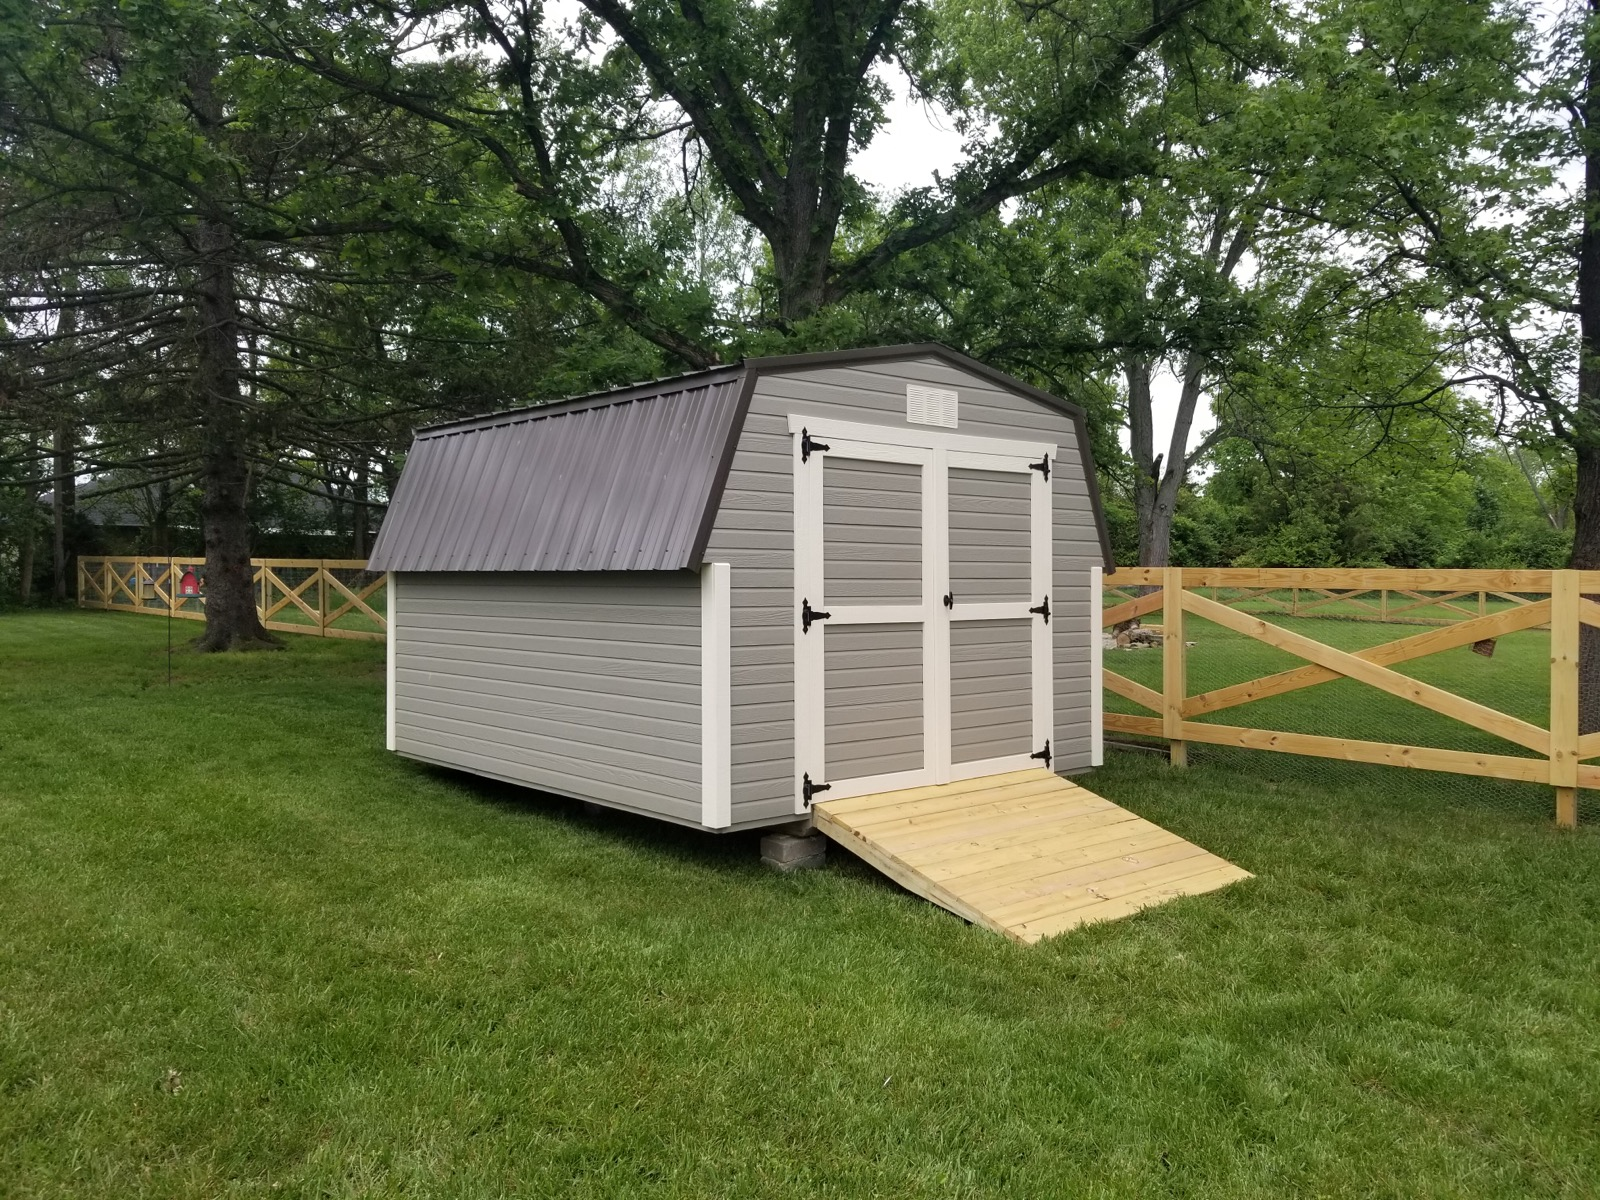 tan mini barn with white trim